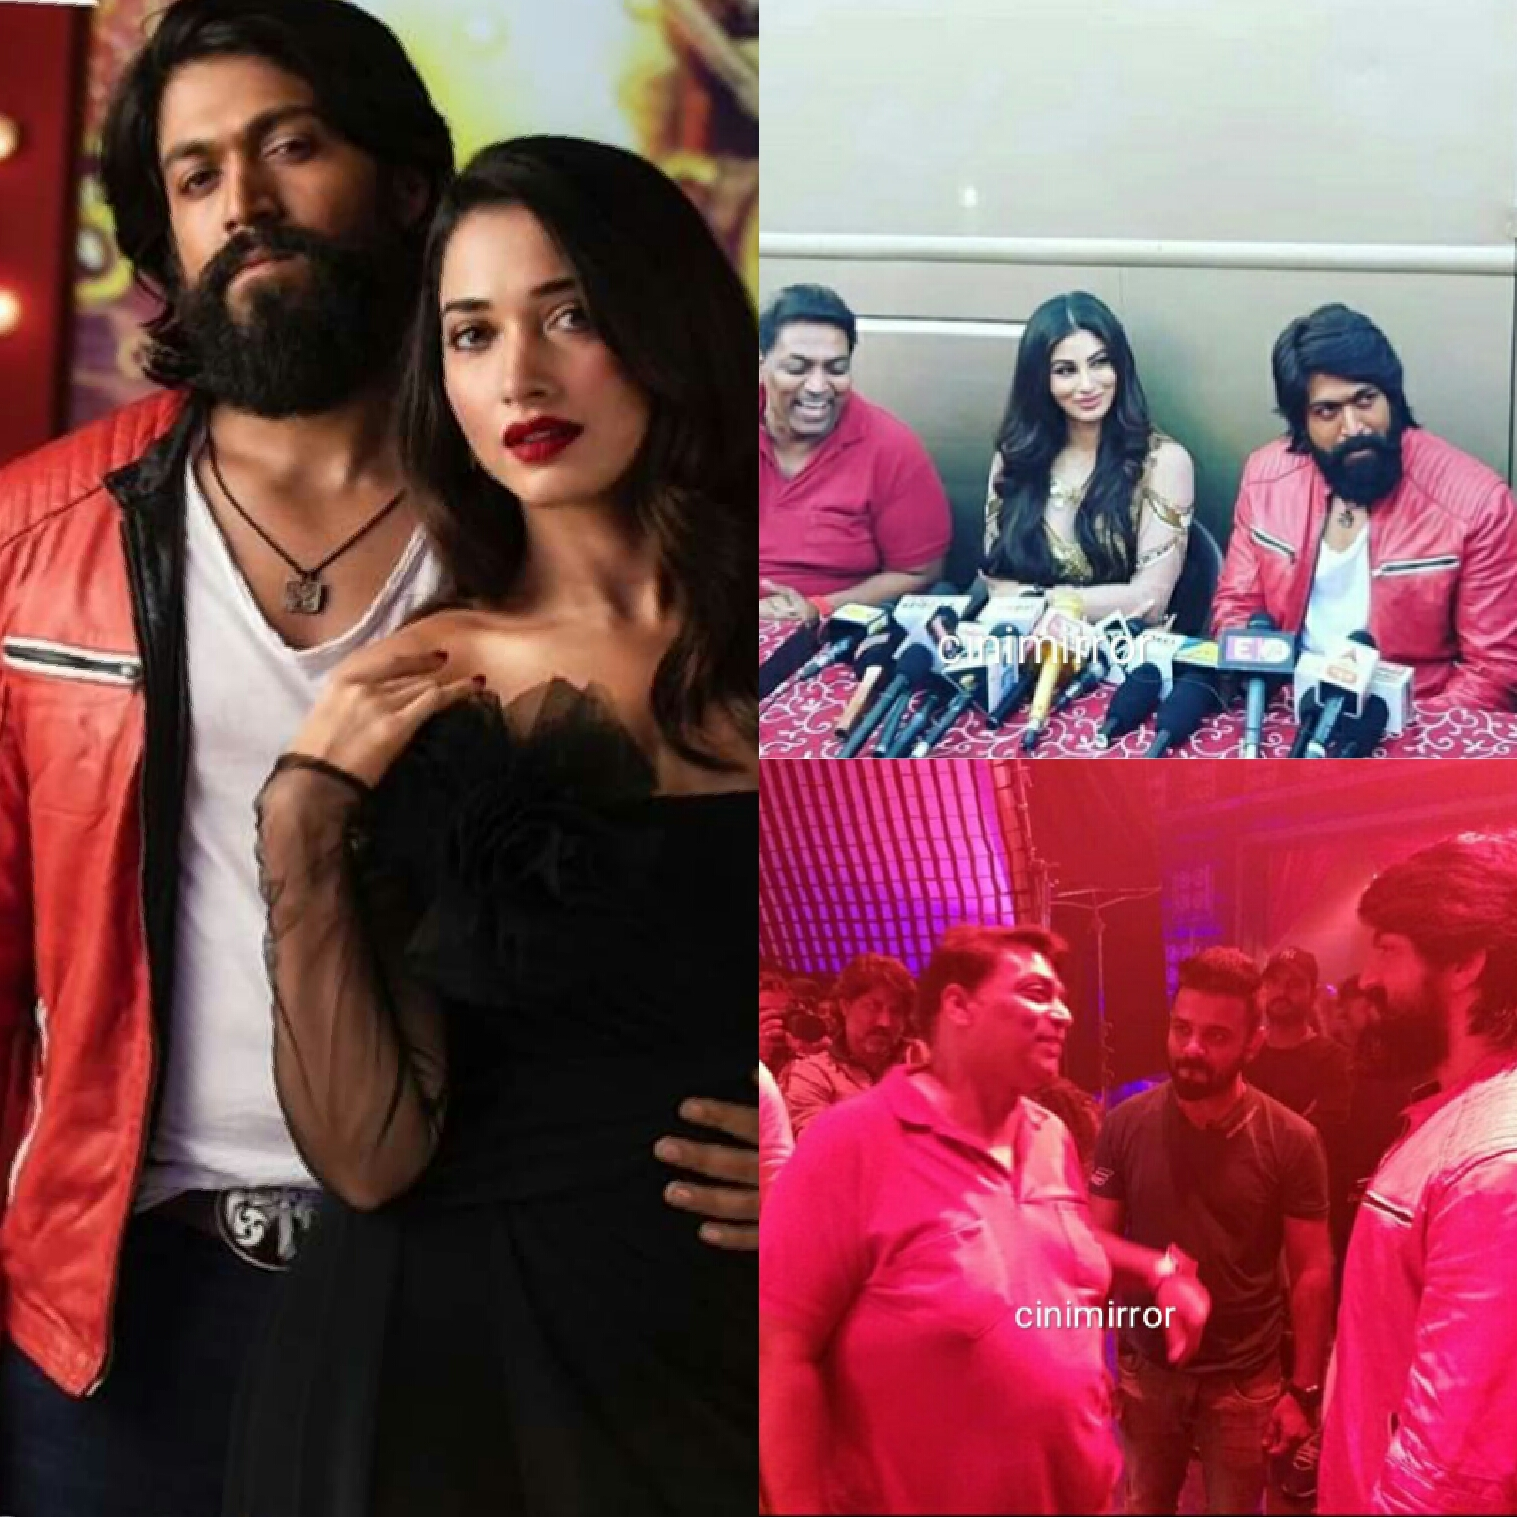 KGF item song has Tamannaah for south and Mouni Roy for